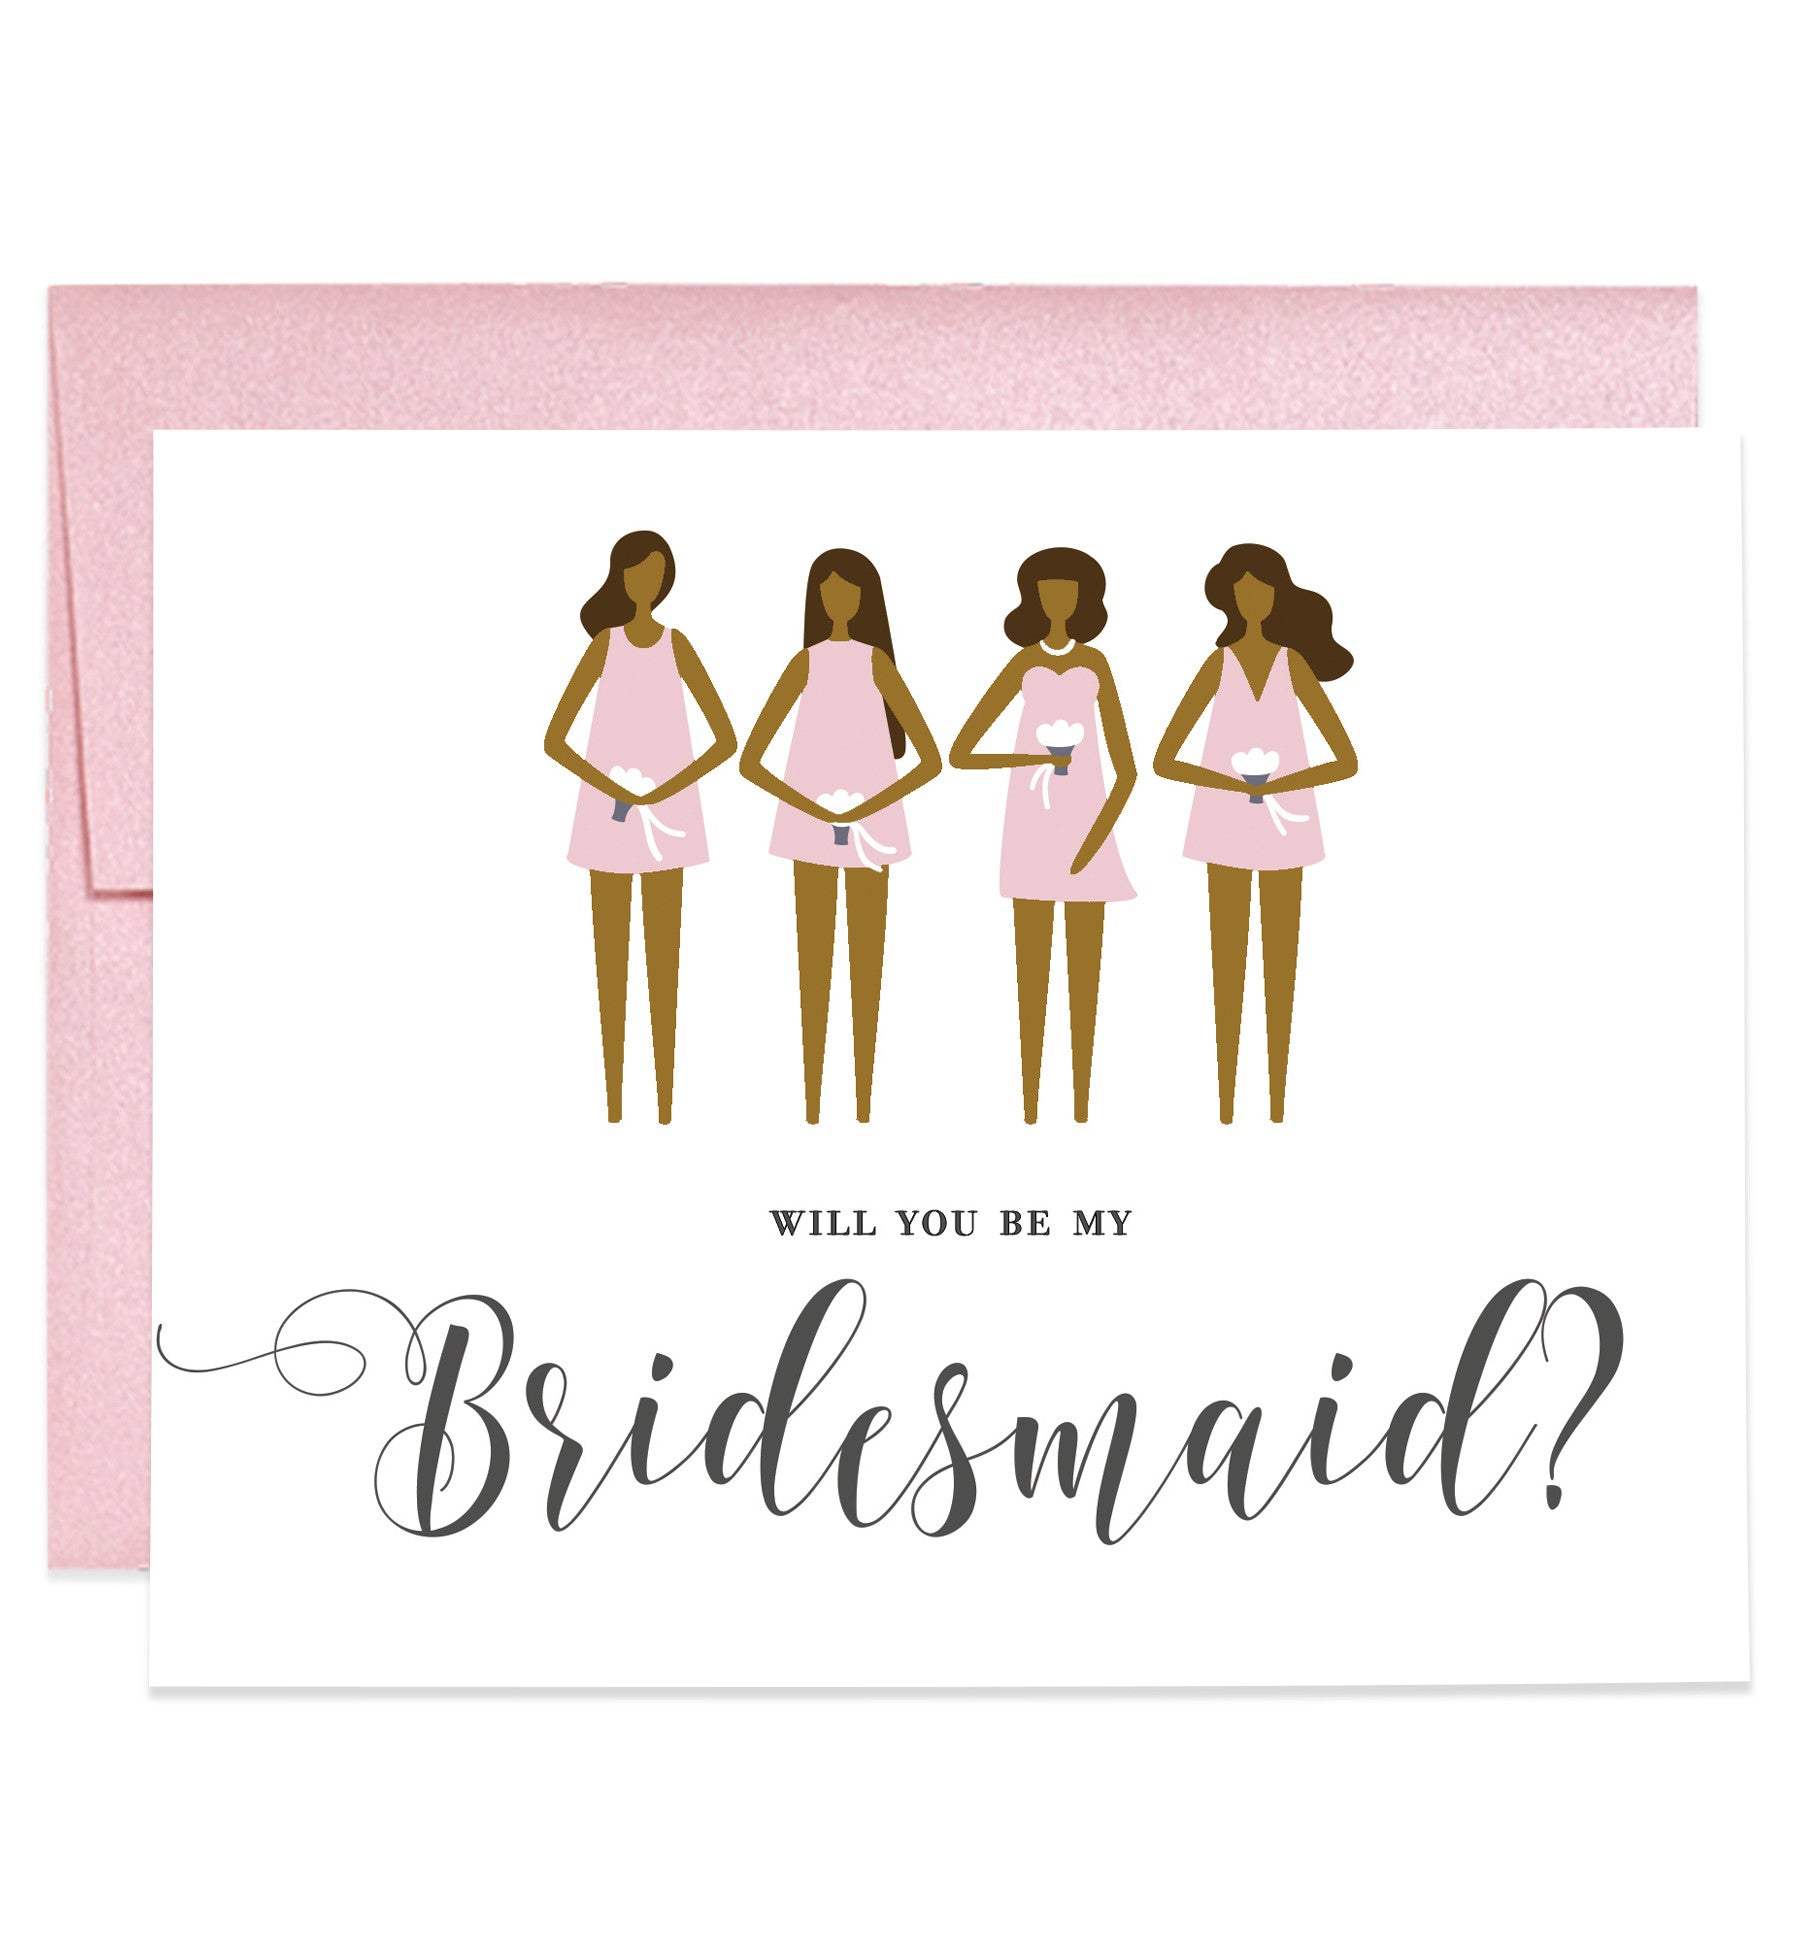 will you be my bridesmaid wine label template - will you be my bridesmaid card rose pink dark skin